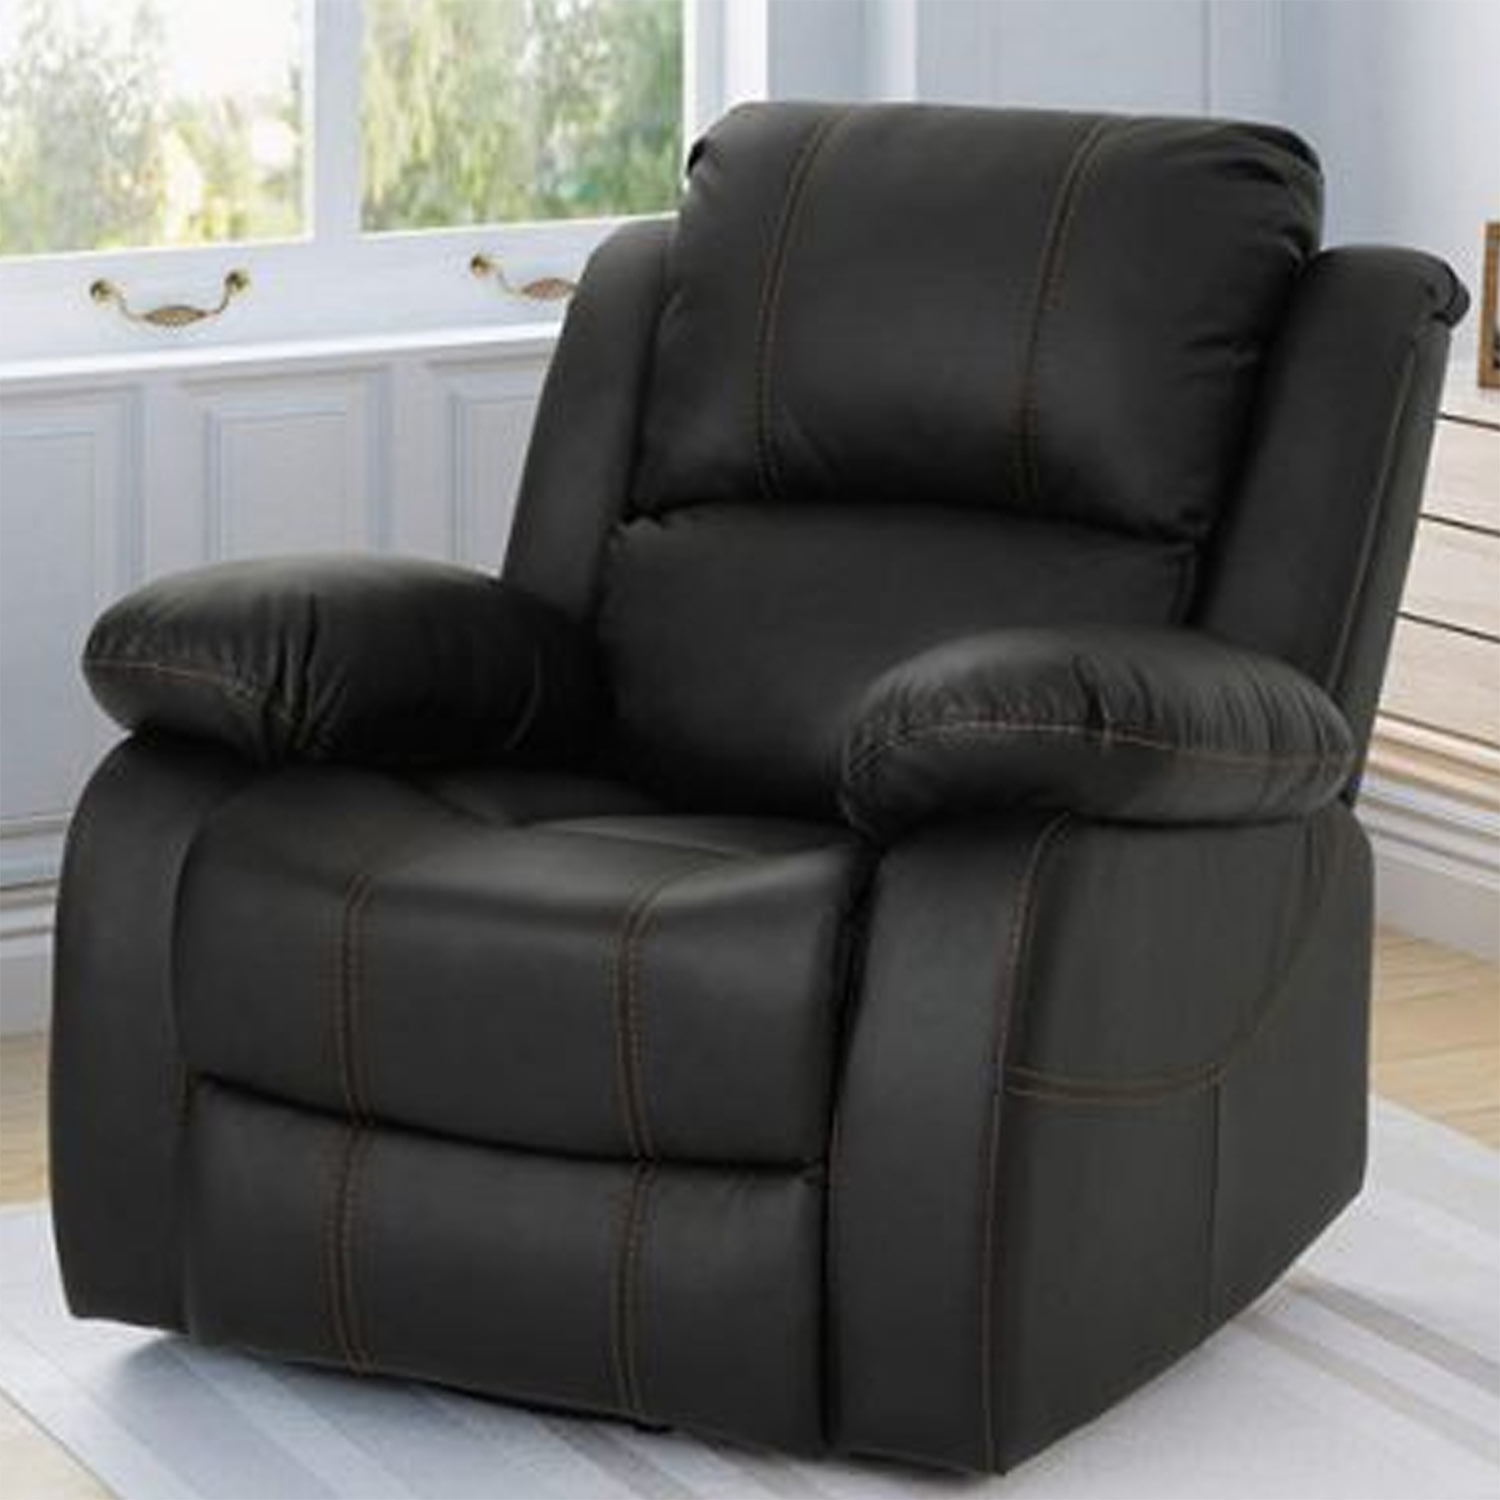 Buy Dinvas Leatherette 1 Seater Recliner Sofa Black Online In India Wooden Street